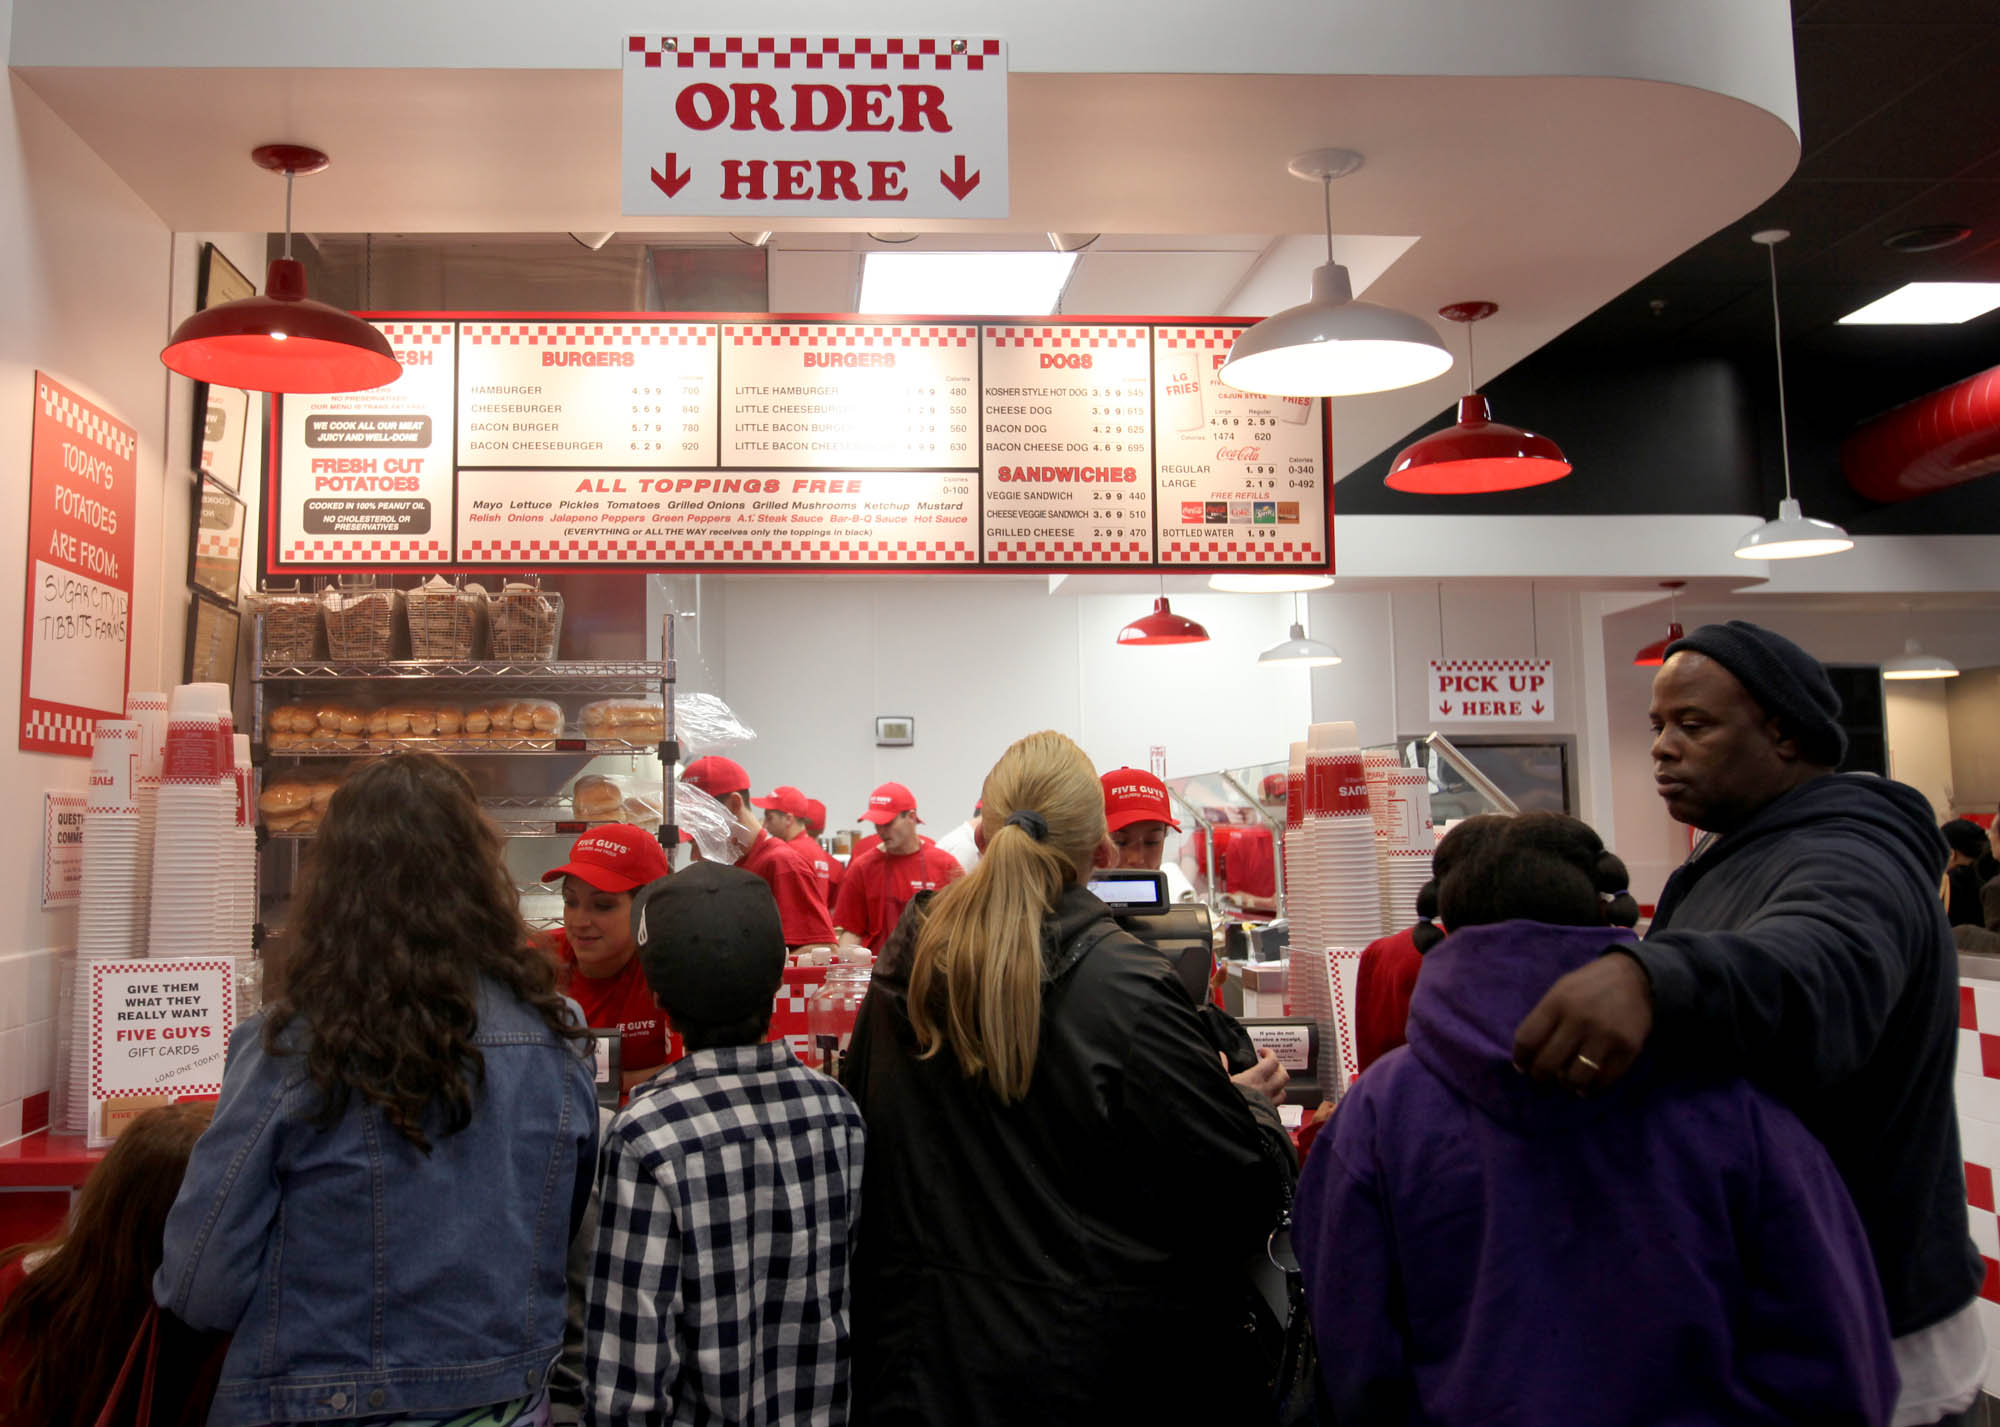 Line to order at the new Five Guys Burger and Fries in Santa Rosa, Feb. 15, 2011 | Crista Jeremiason,